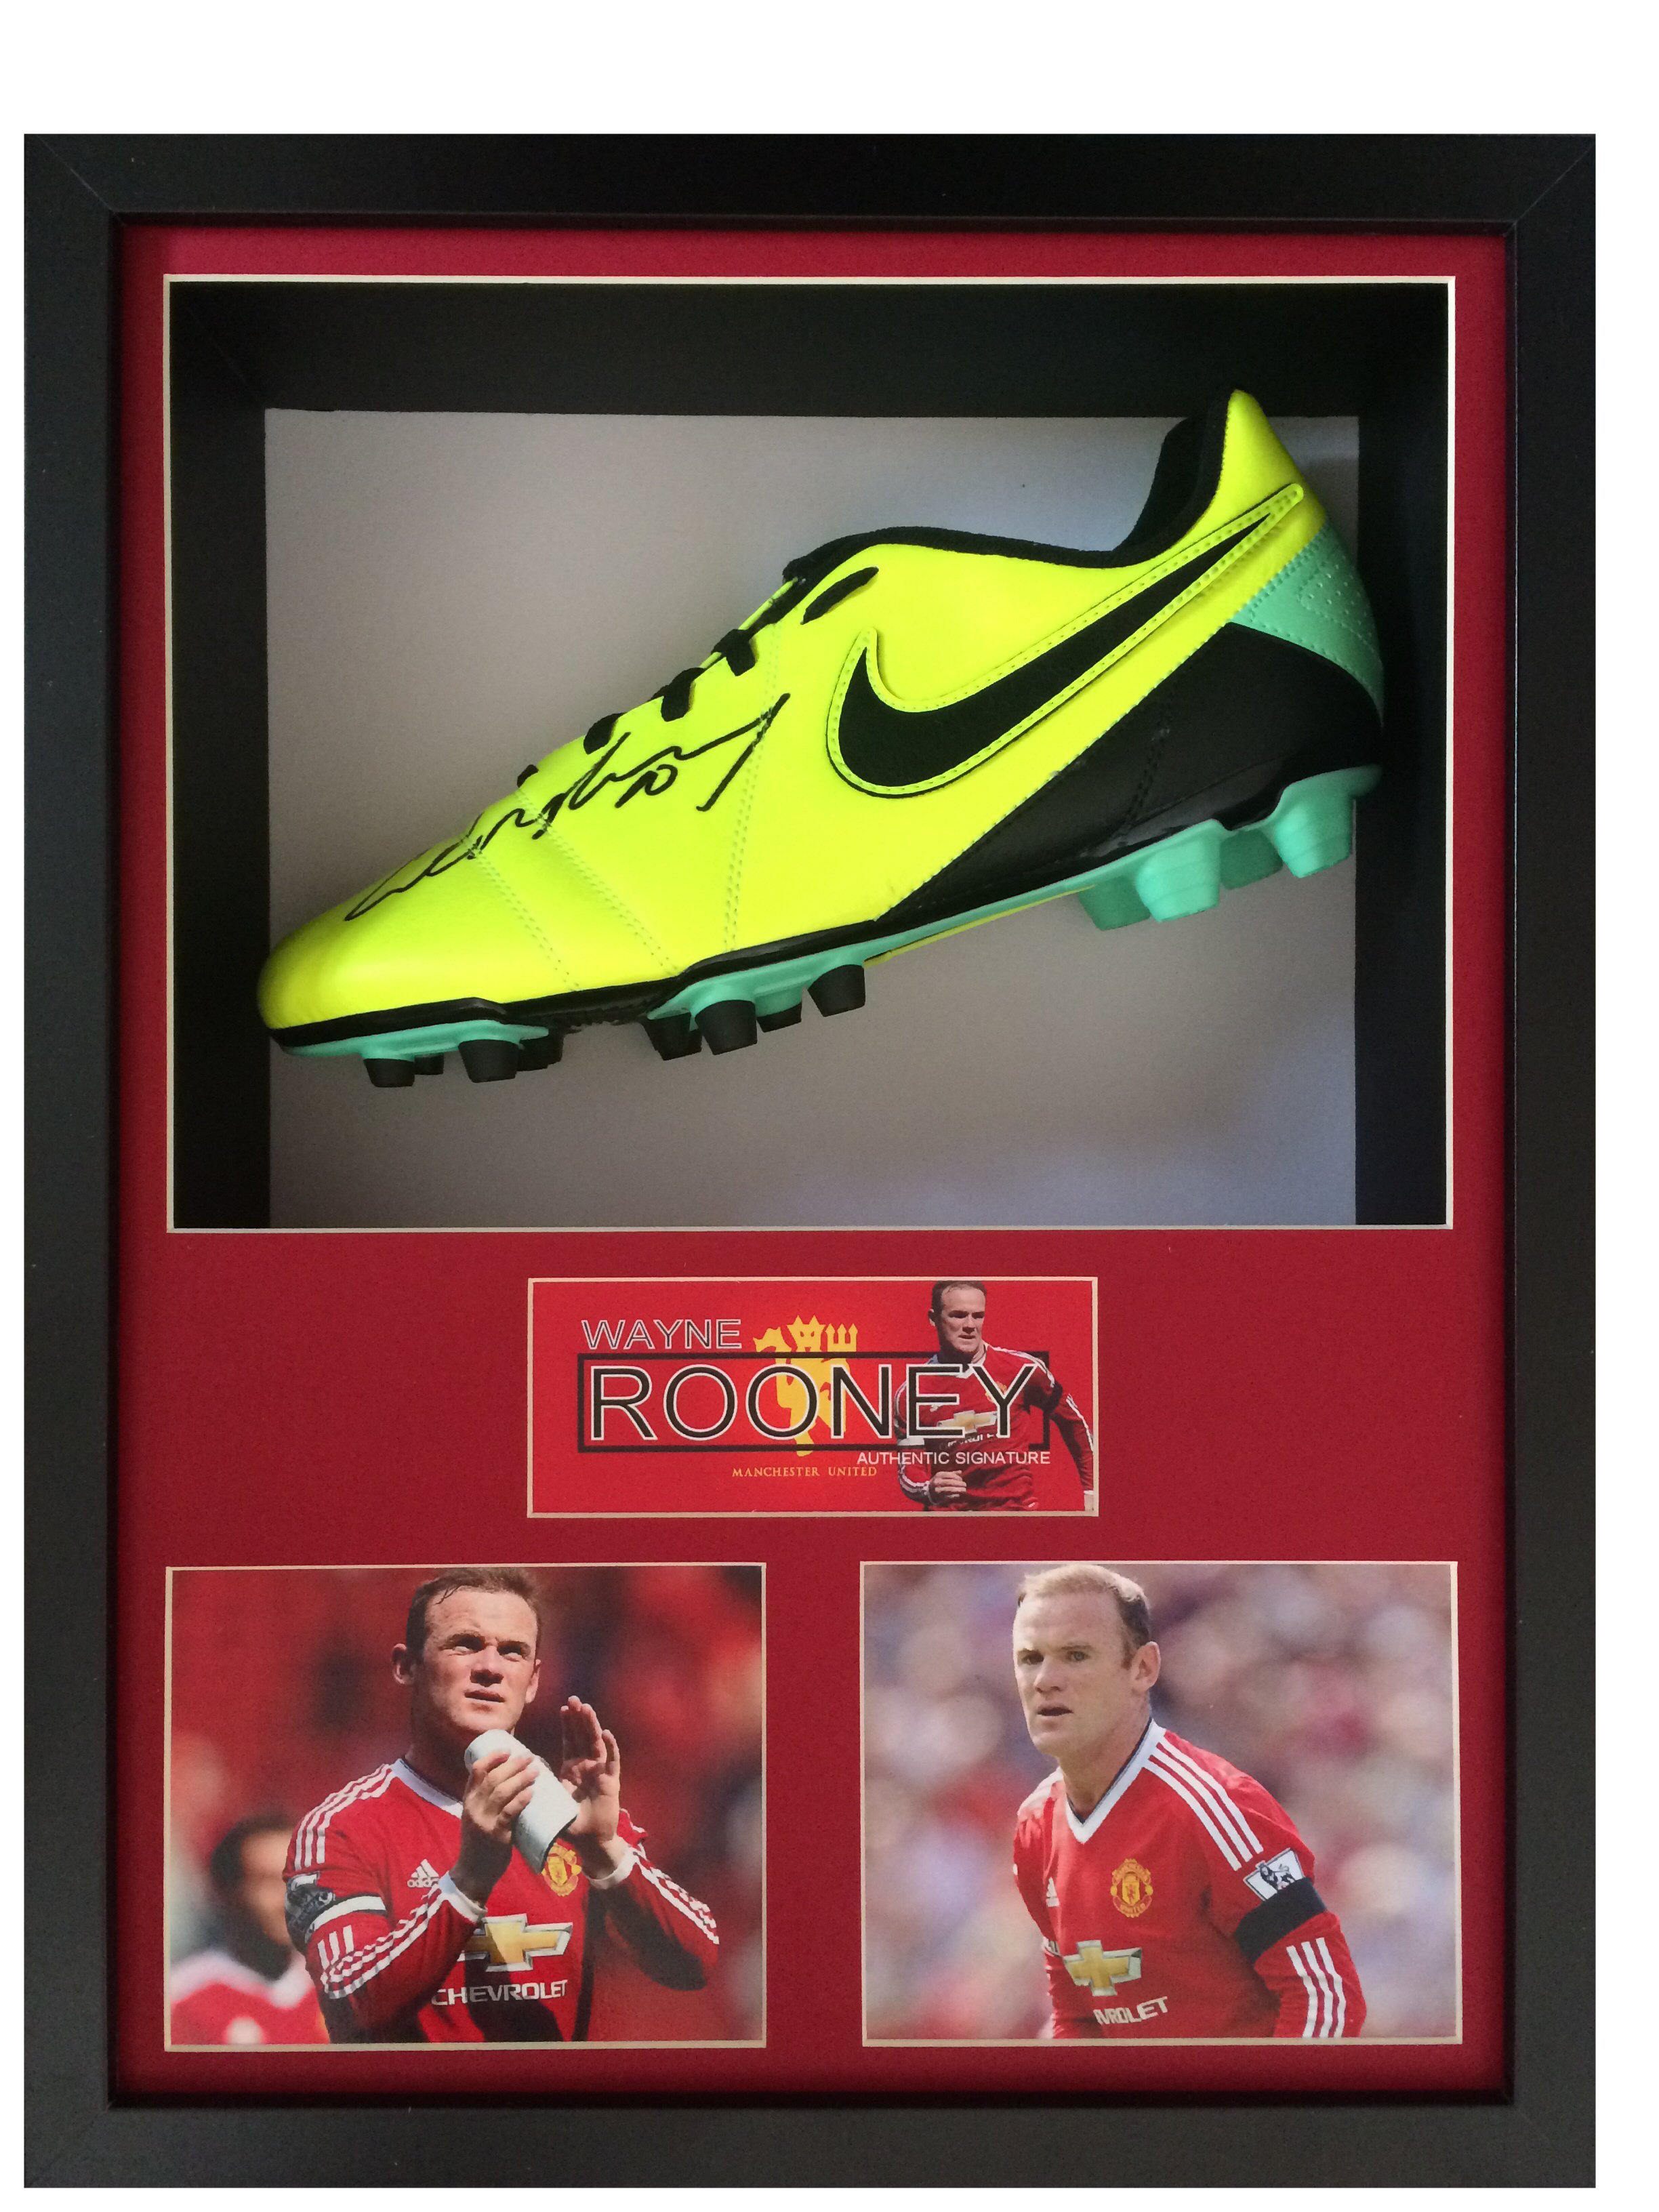 Square Events - Mad about Sport Rooney boot